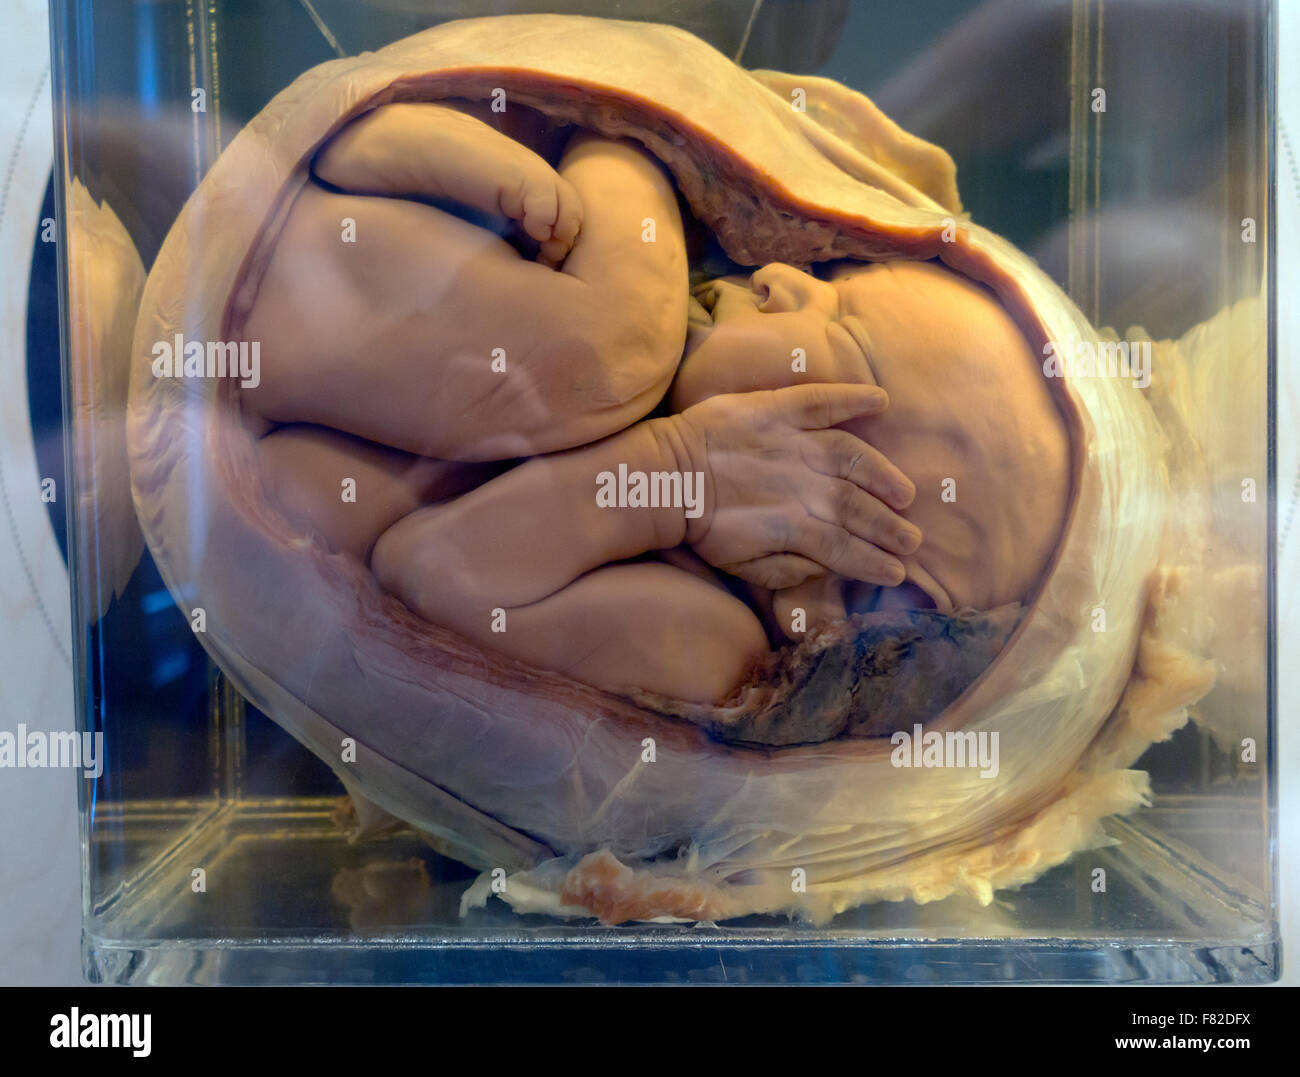 A fully developed foetus in the womb preserved in formalin jar. Medical Museion, Copenhagen, Denmark. - Stock Image